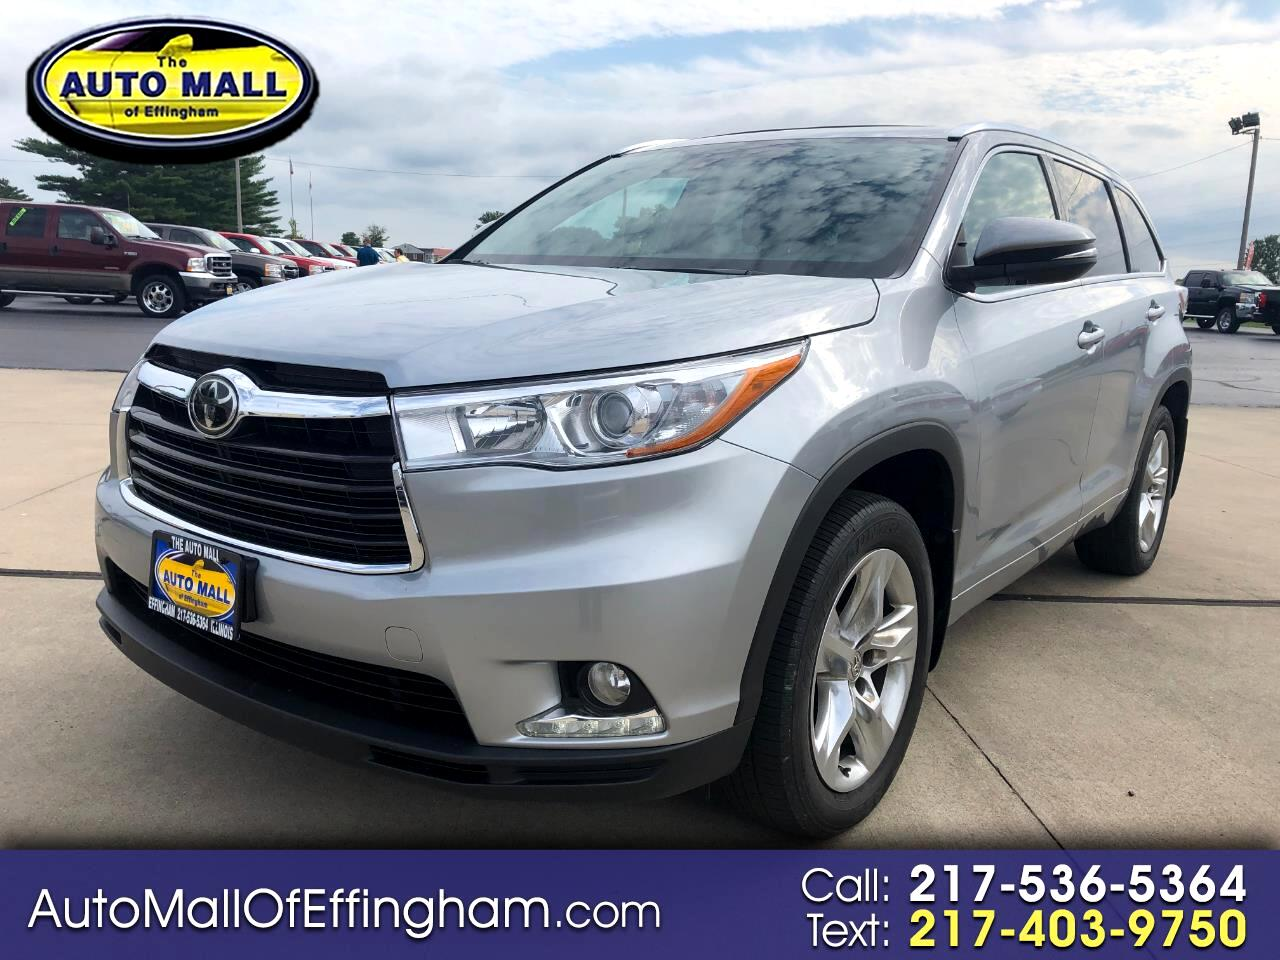 Toyota Highlander AWD 4dr V6 Limited Platinum (Natl) 2015